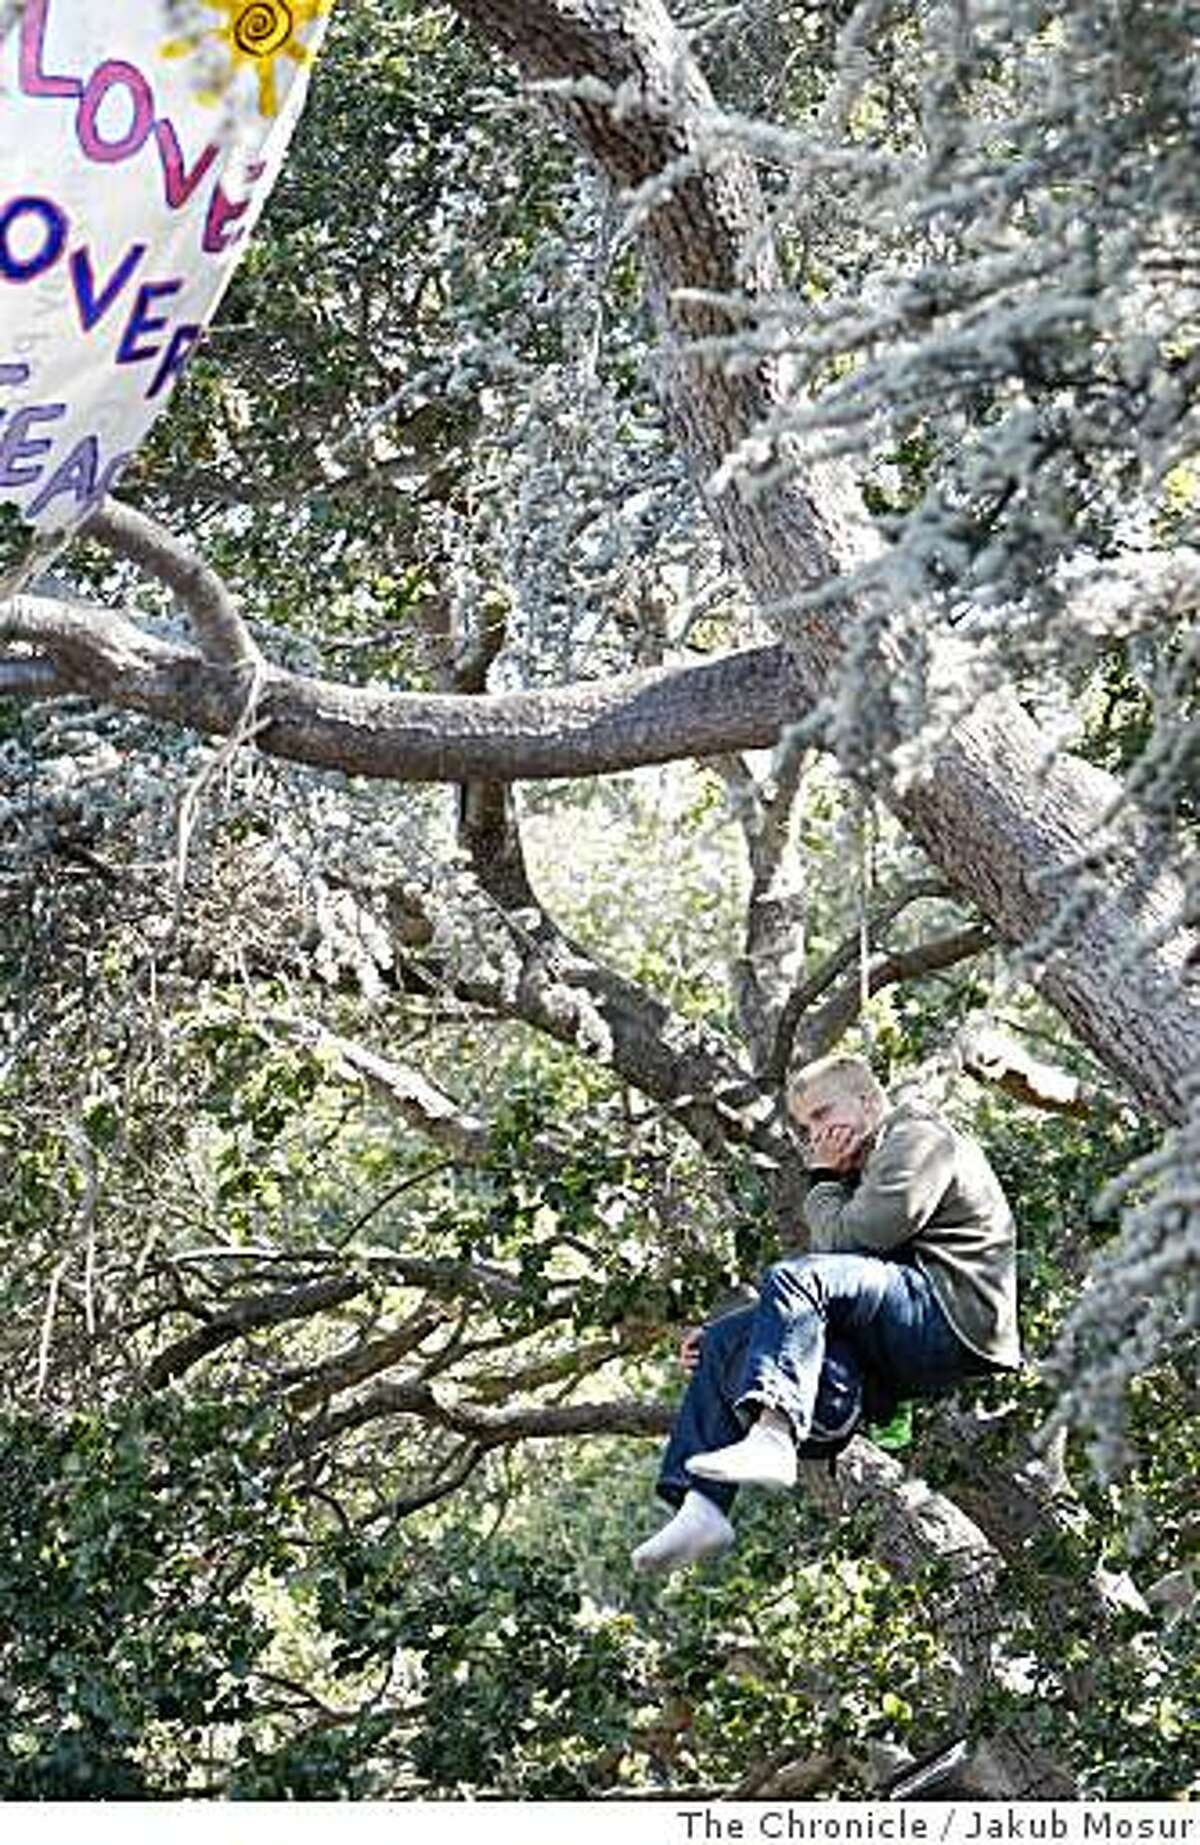 Tree-sitting protesters look on as authorities cut supply lines and removed gear near Memorial Stadium in Berkeley, Calif. on Tuesday, June 17, 2008. Photo by Jakub Mosur / Special to the Chronicle.